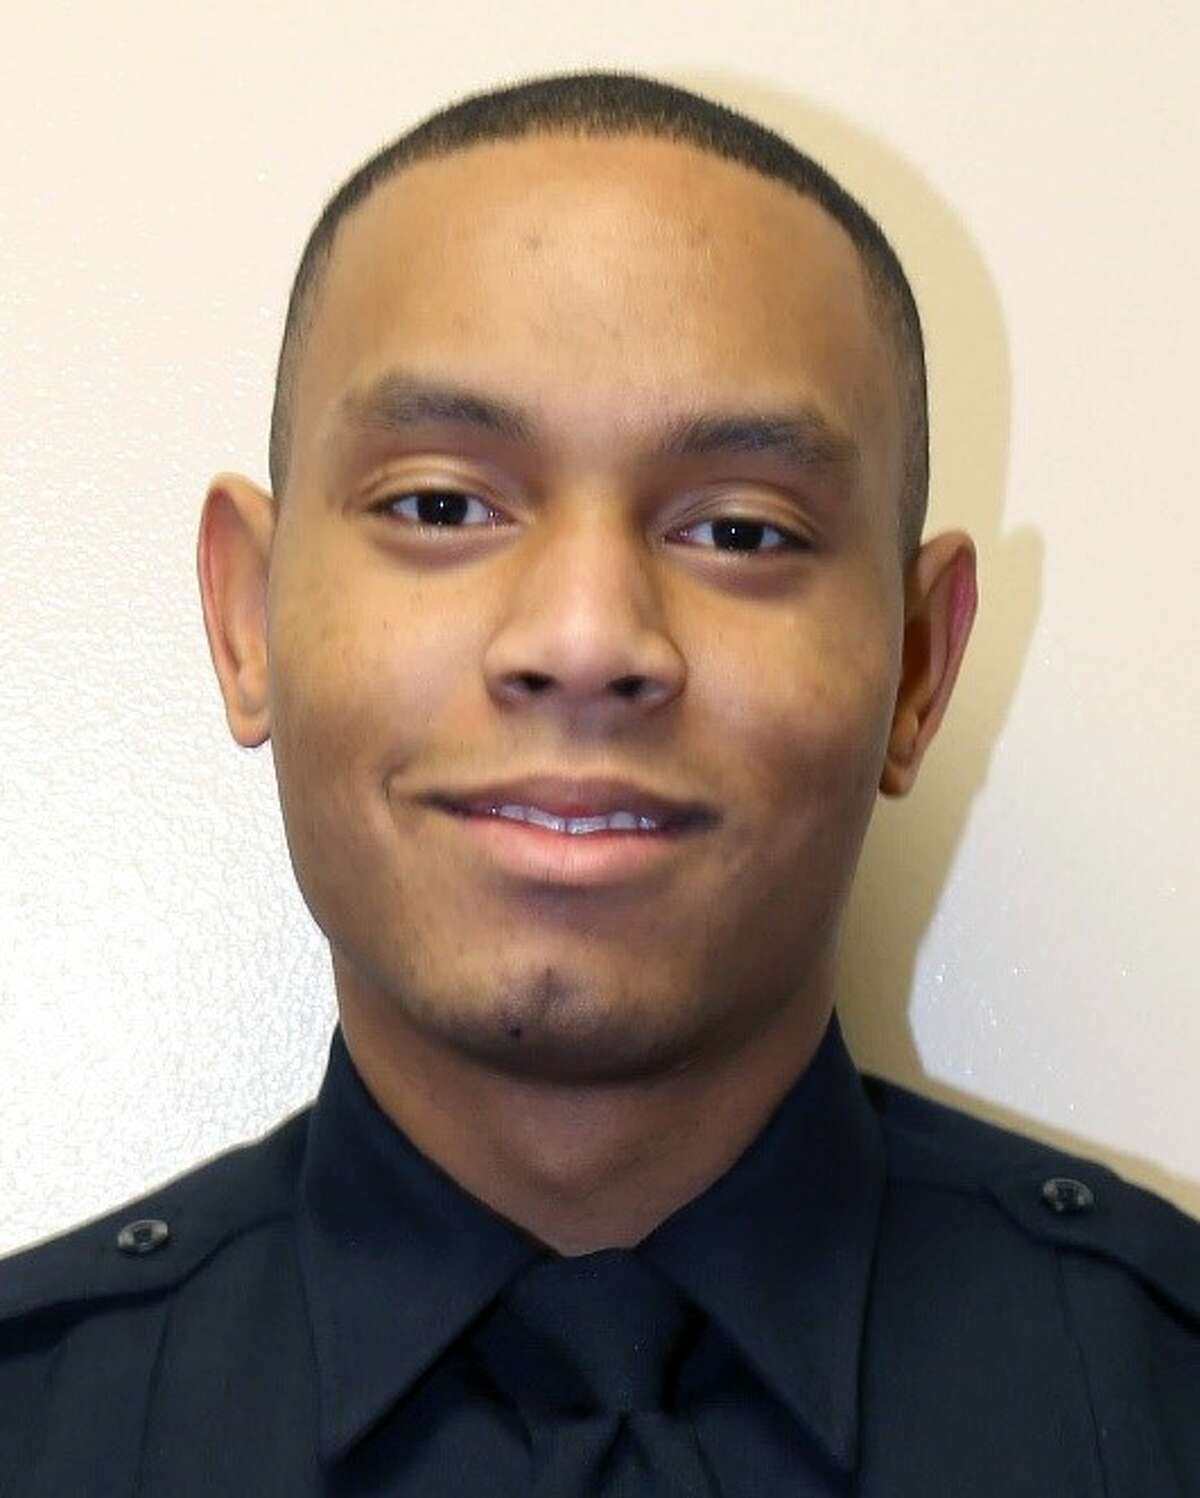 A San Antonio police officer was arrested on suspicion of driving while intoxicated, the department said Friday in a news release.